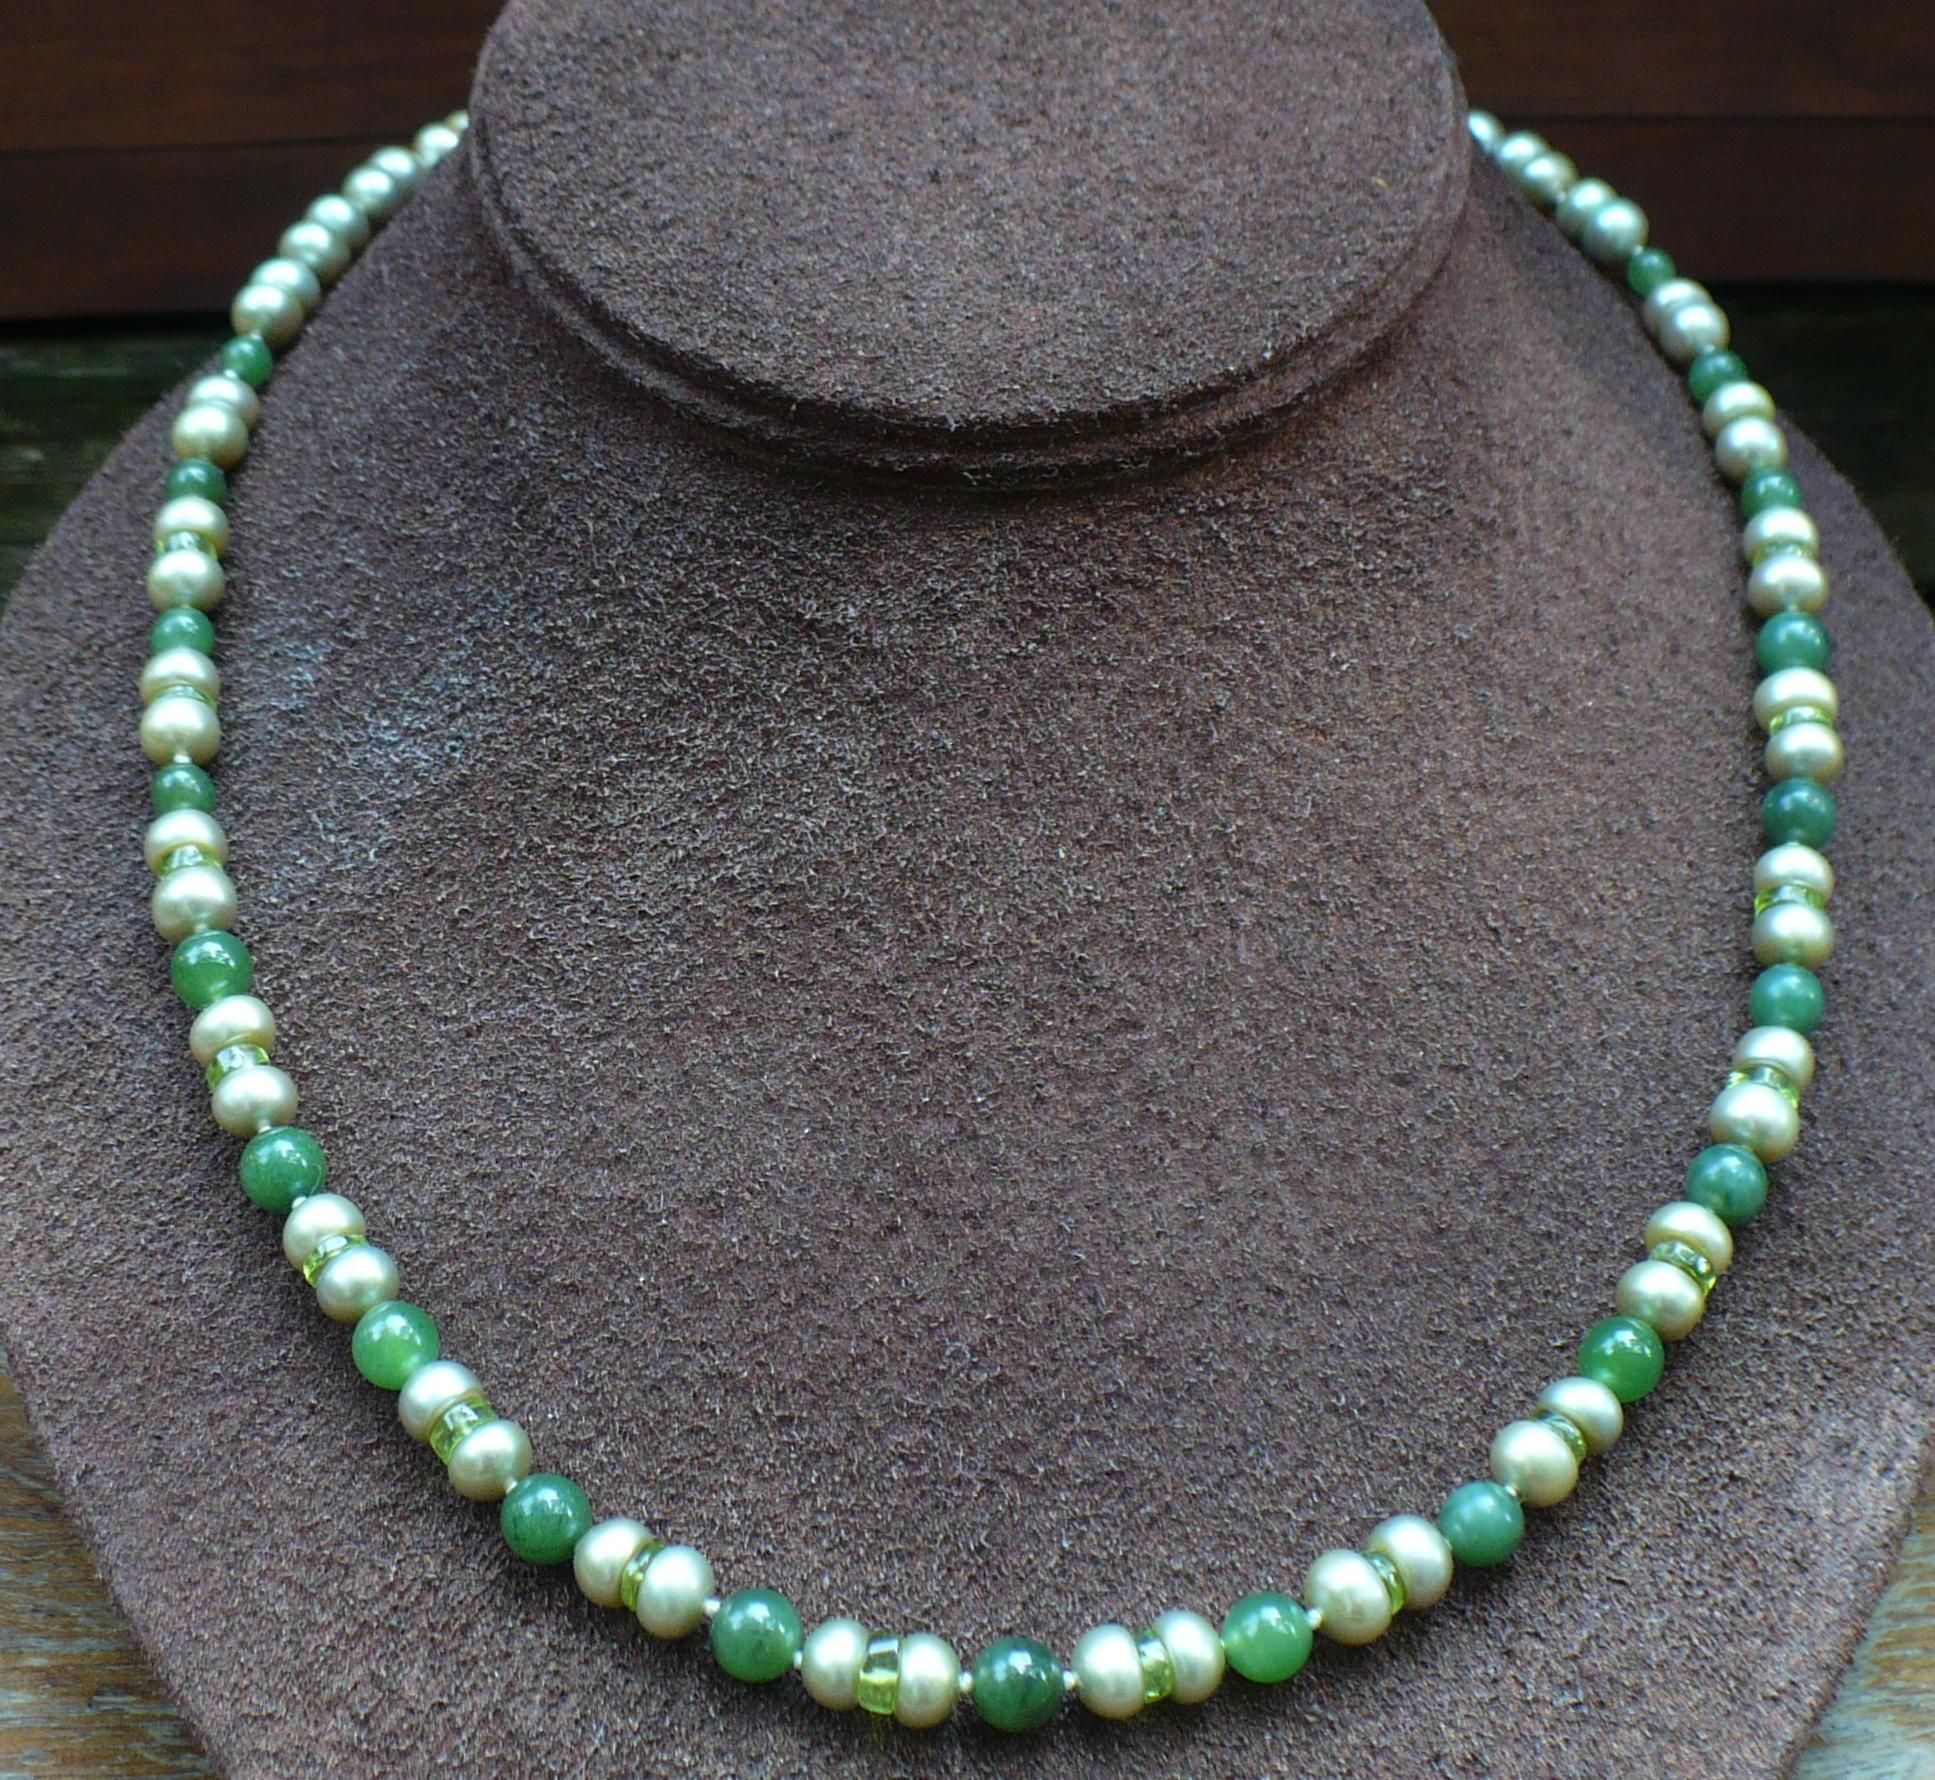 Custom Green Freshwater Pearls Peridot And Nephrite Jade Bead Necklace Jade Bead Necklace Artisan Necklace Beaded Necklace